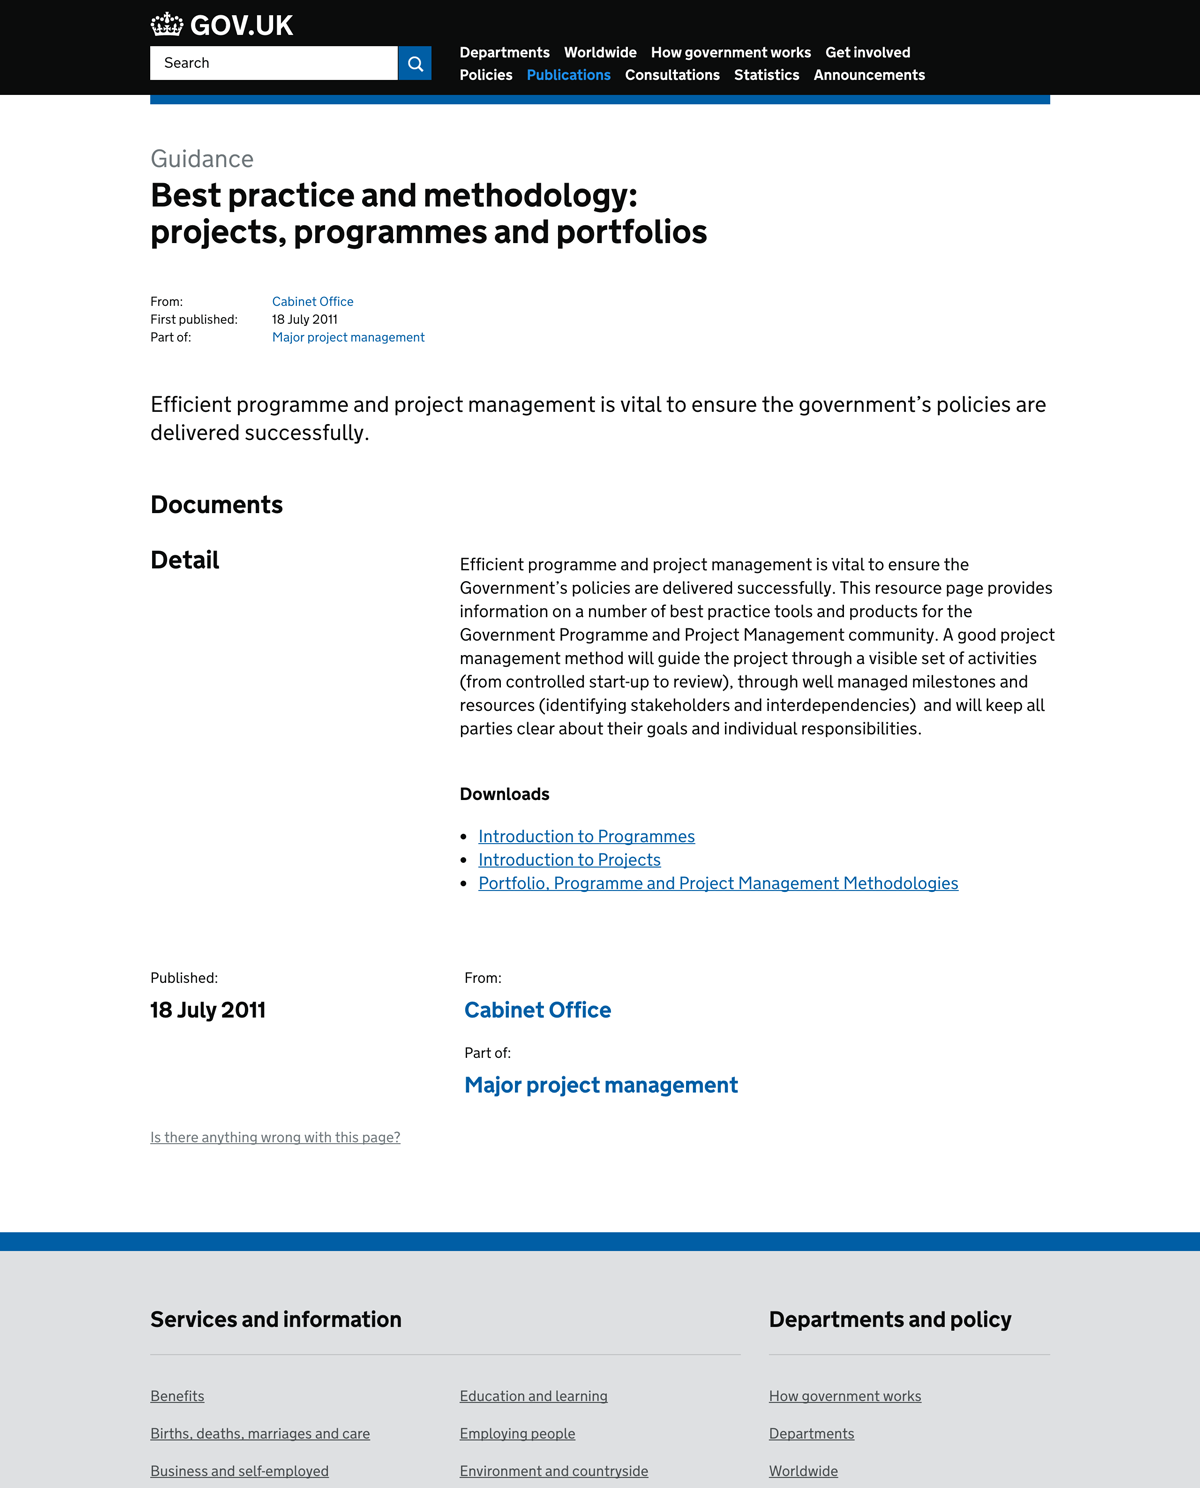 Best practice and methodology: projects, programmes and portfolios